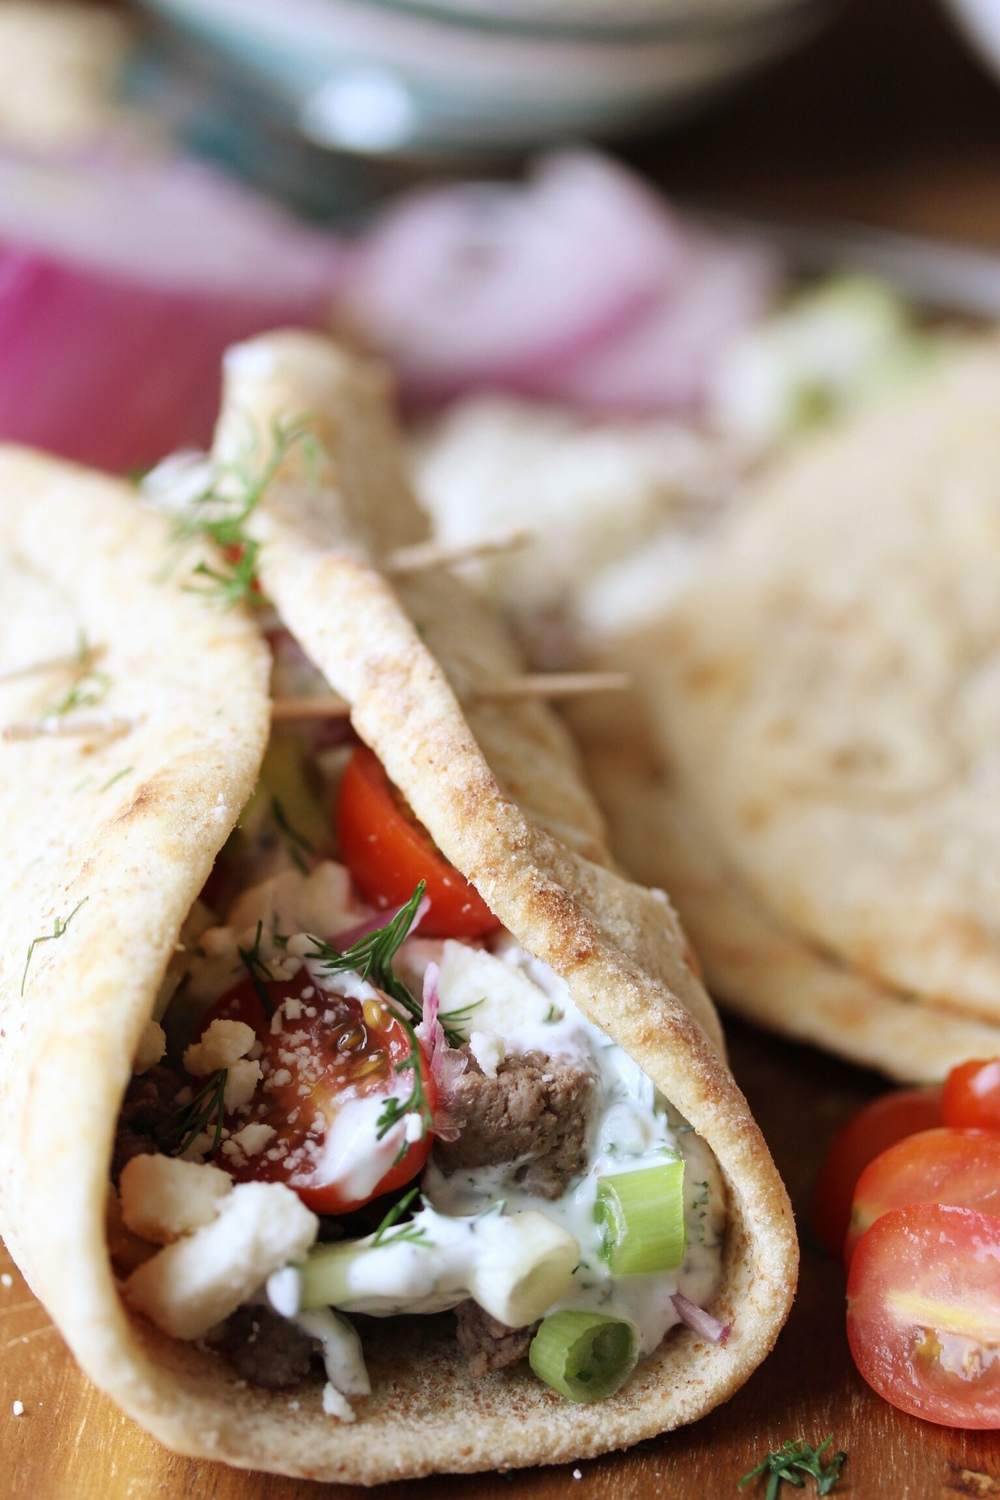 Greek pitas with lamb - The Pastiche